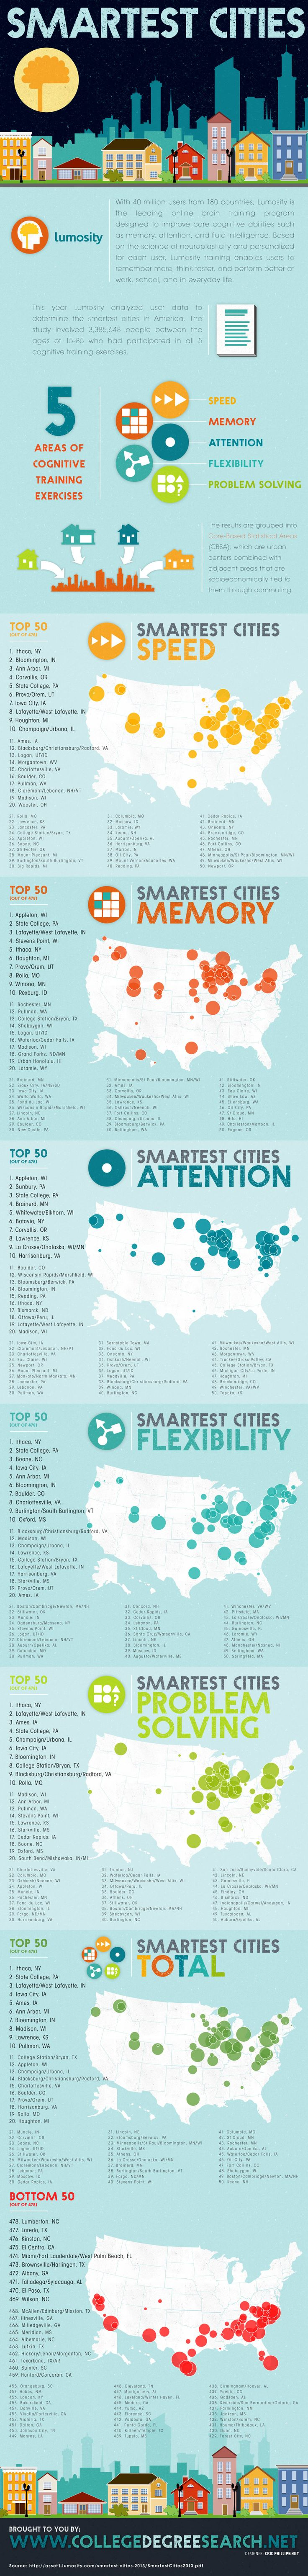 CREATING SMART CITIES IS DIRECTLY TIED TO EDUCATIONAL OPPORTUNITIES AND CHOICES, OFTEN COLLEGE TOWNS. The Smartest Cities in America | CEOs for Cities